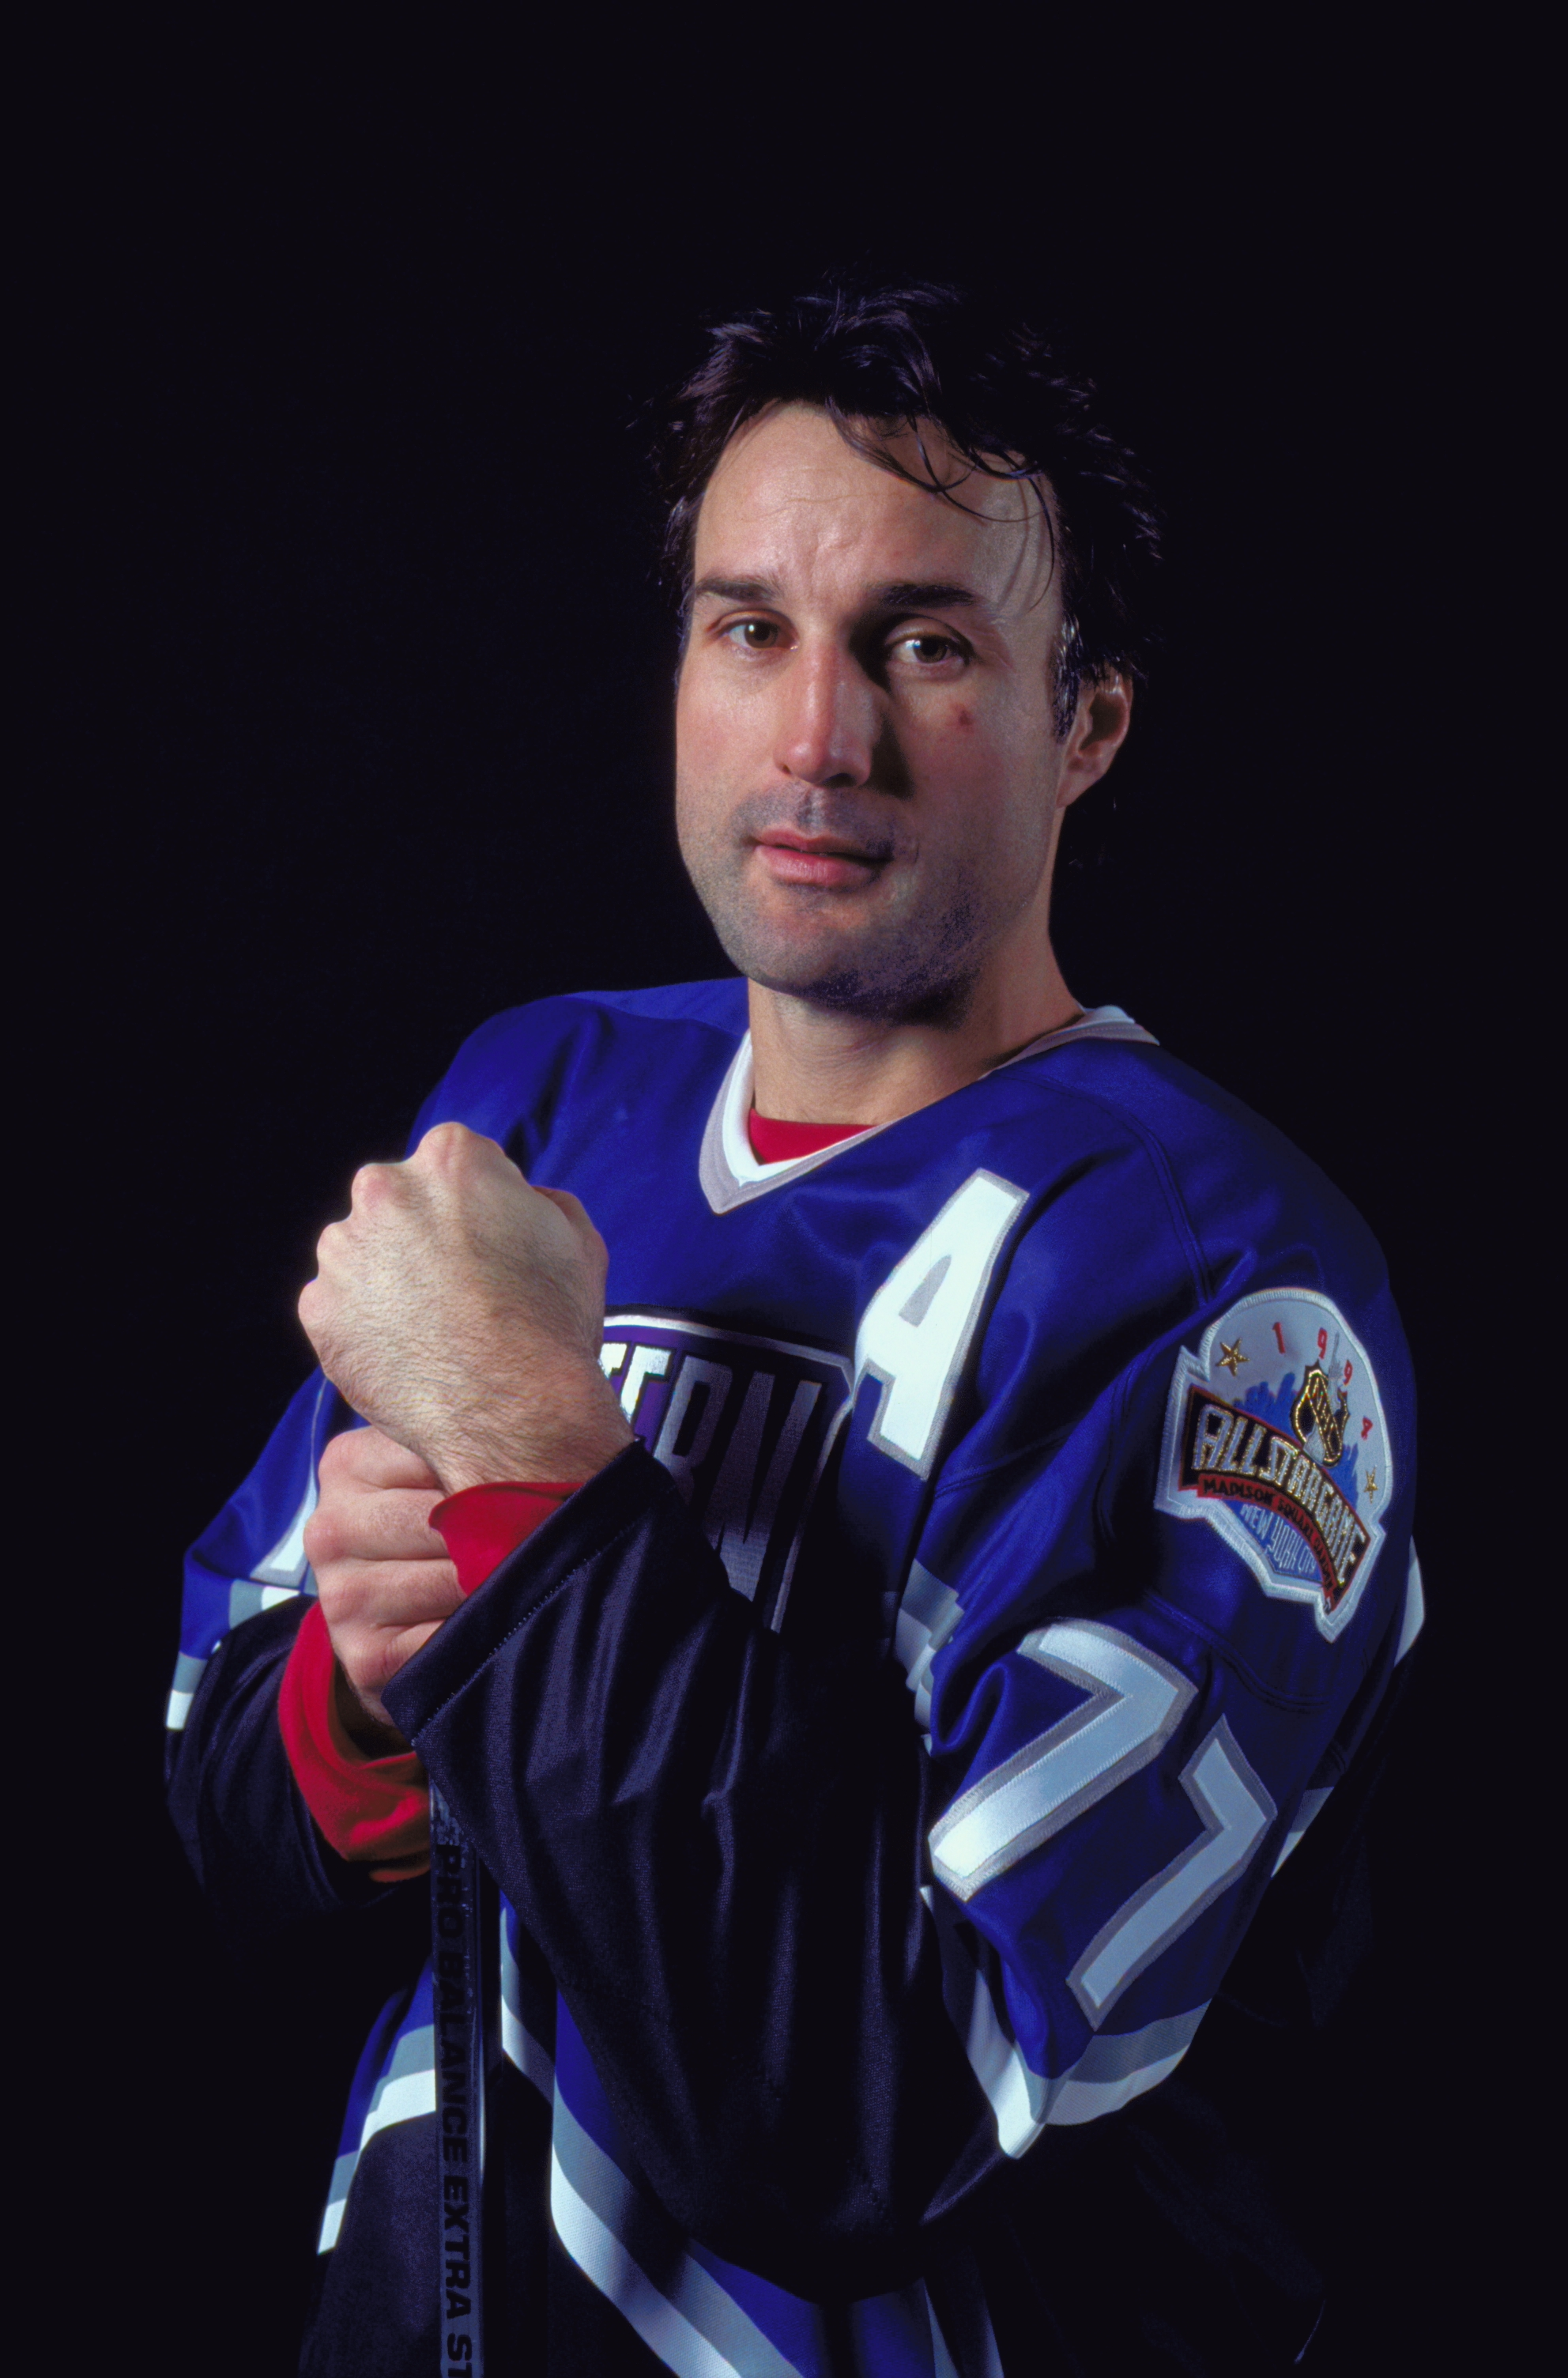 Hall of Famer Paul Coffey